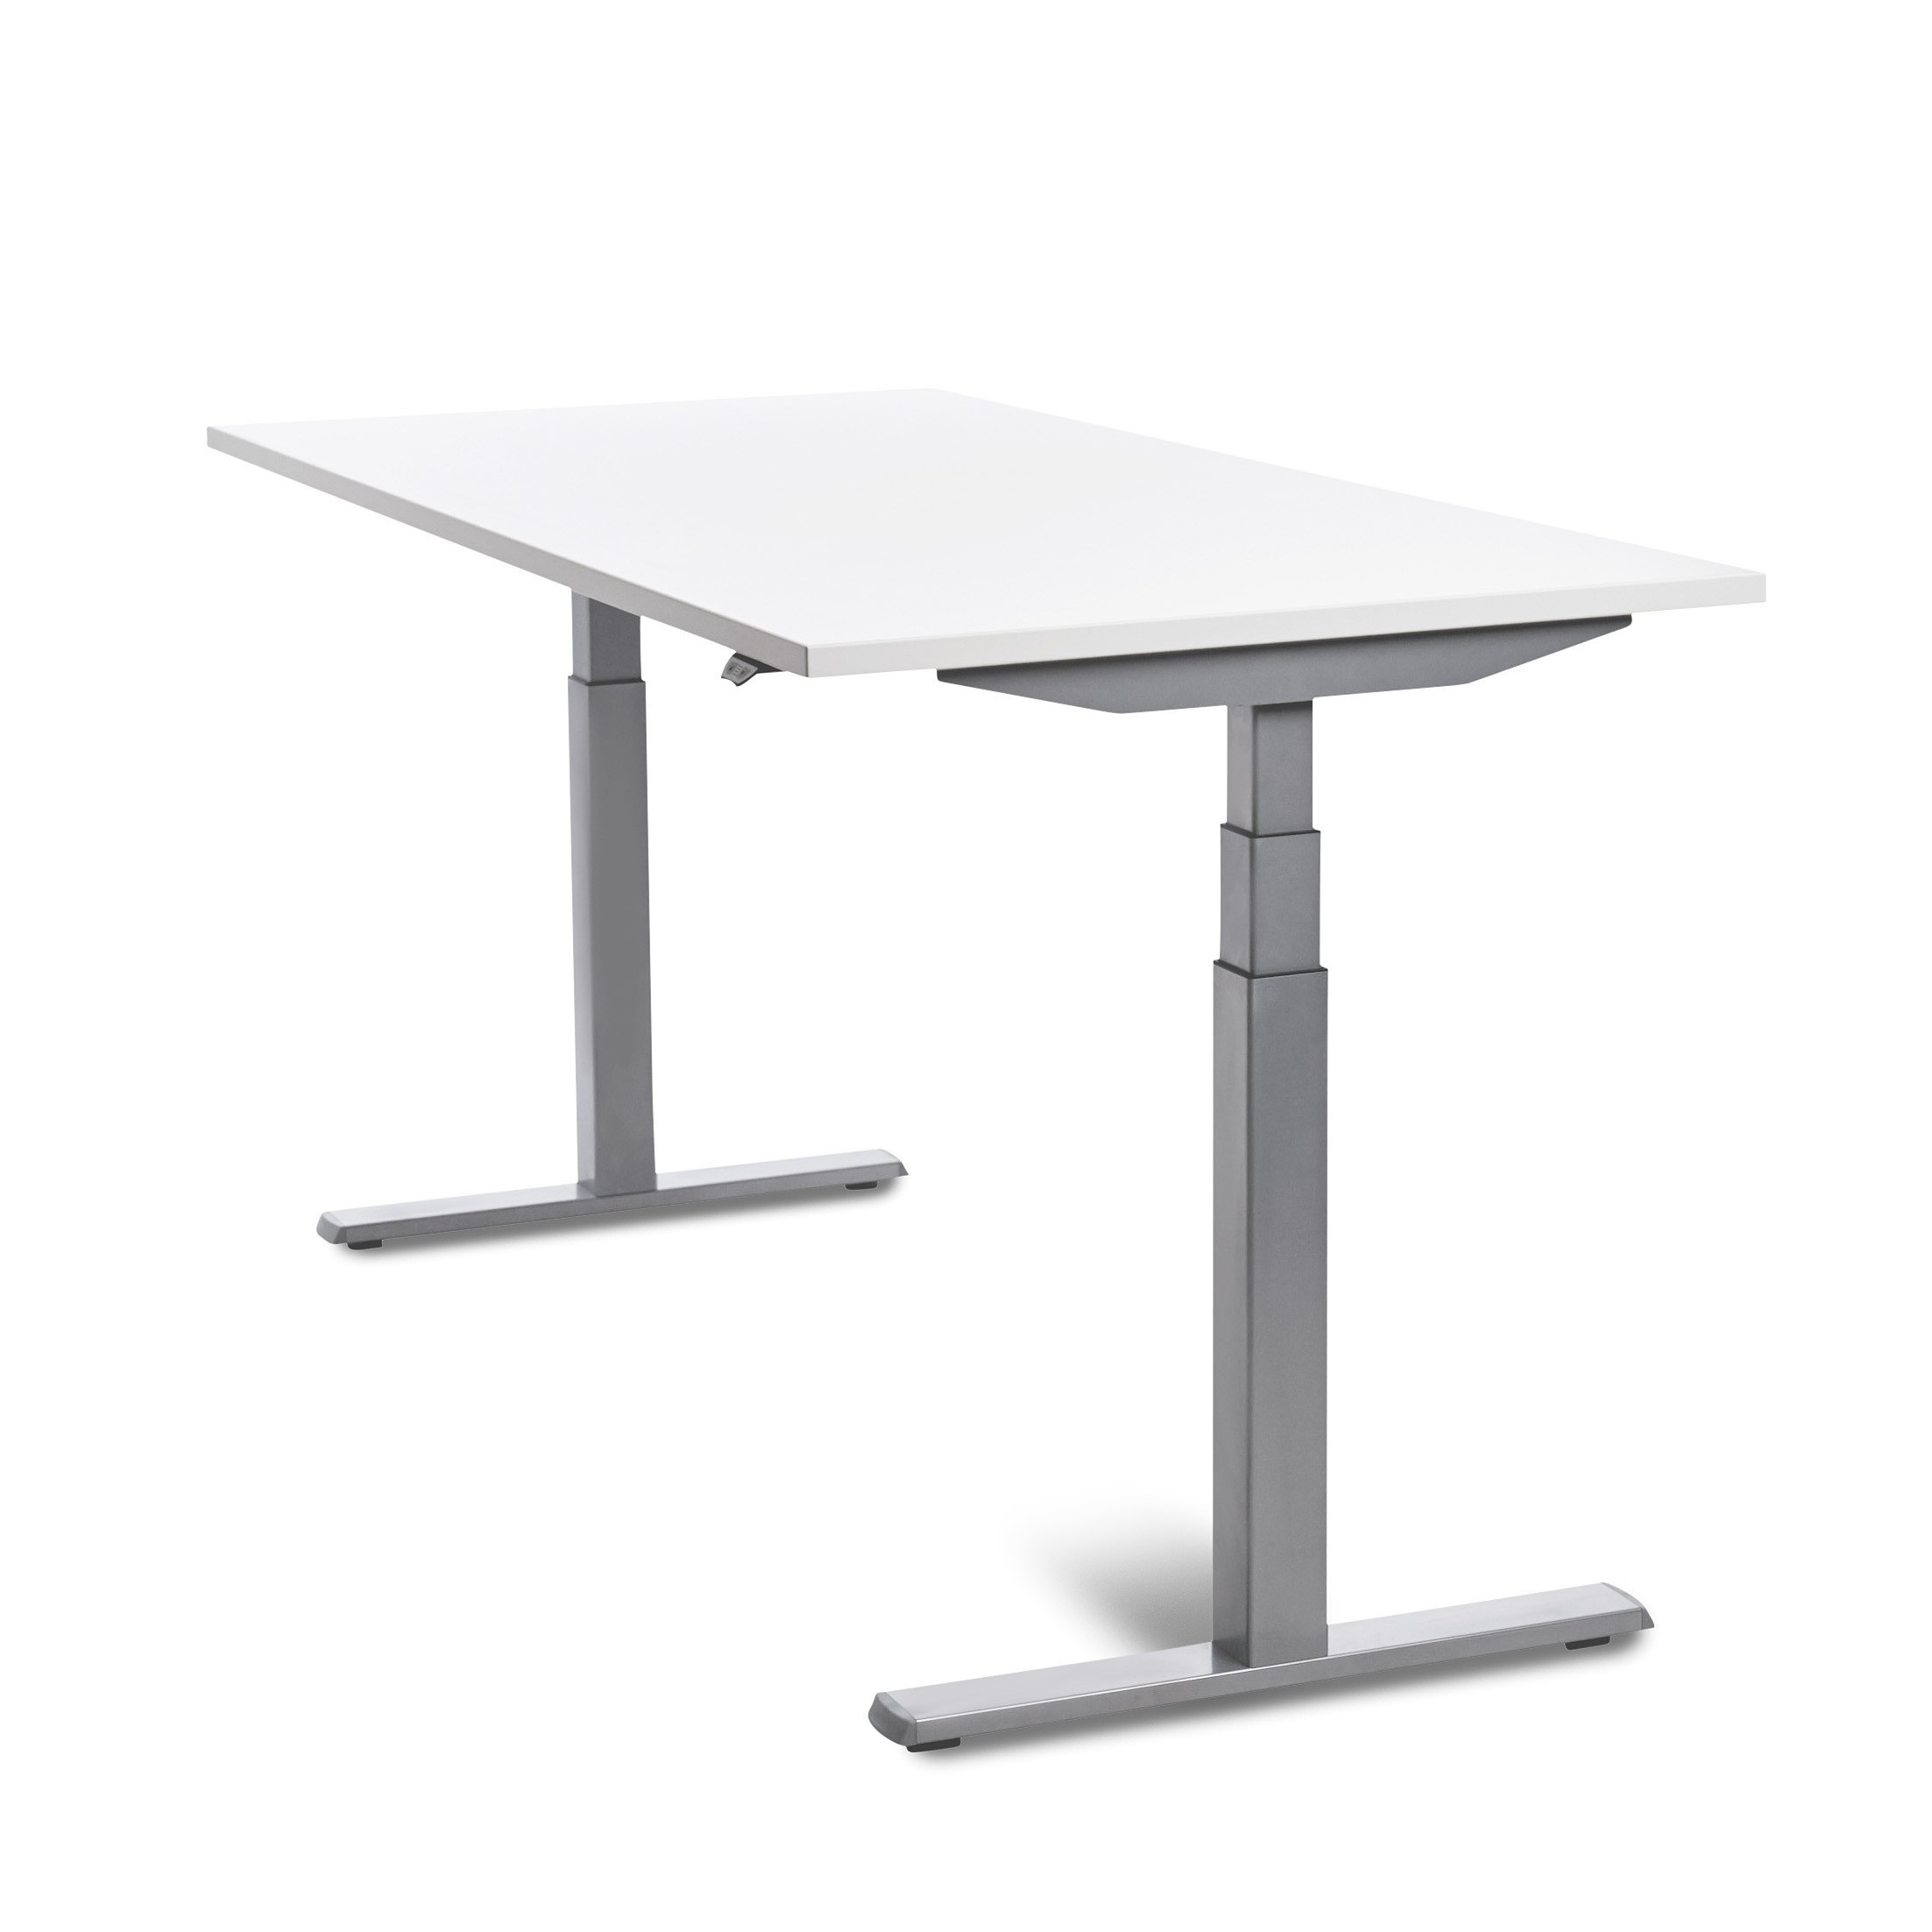 180cm HEIGHT ADJUSTABLE ELECTRICALLY DASH TABLE WHITE COLOR